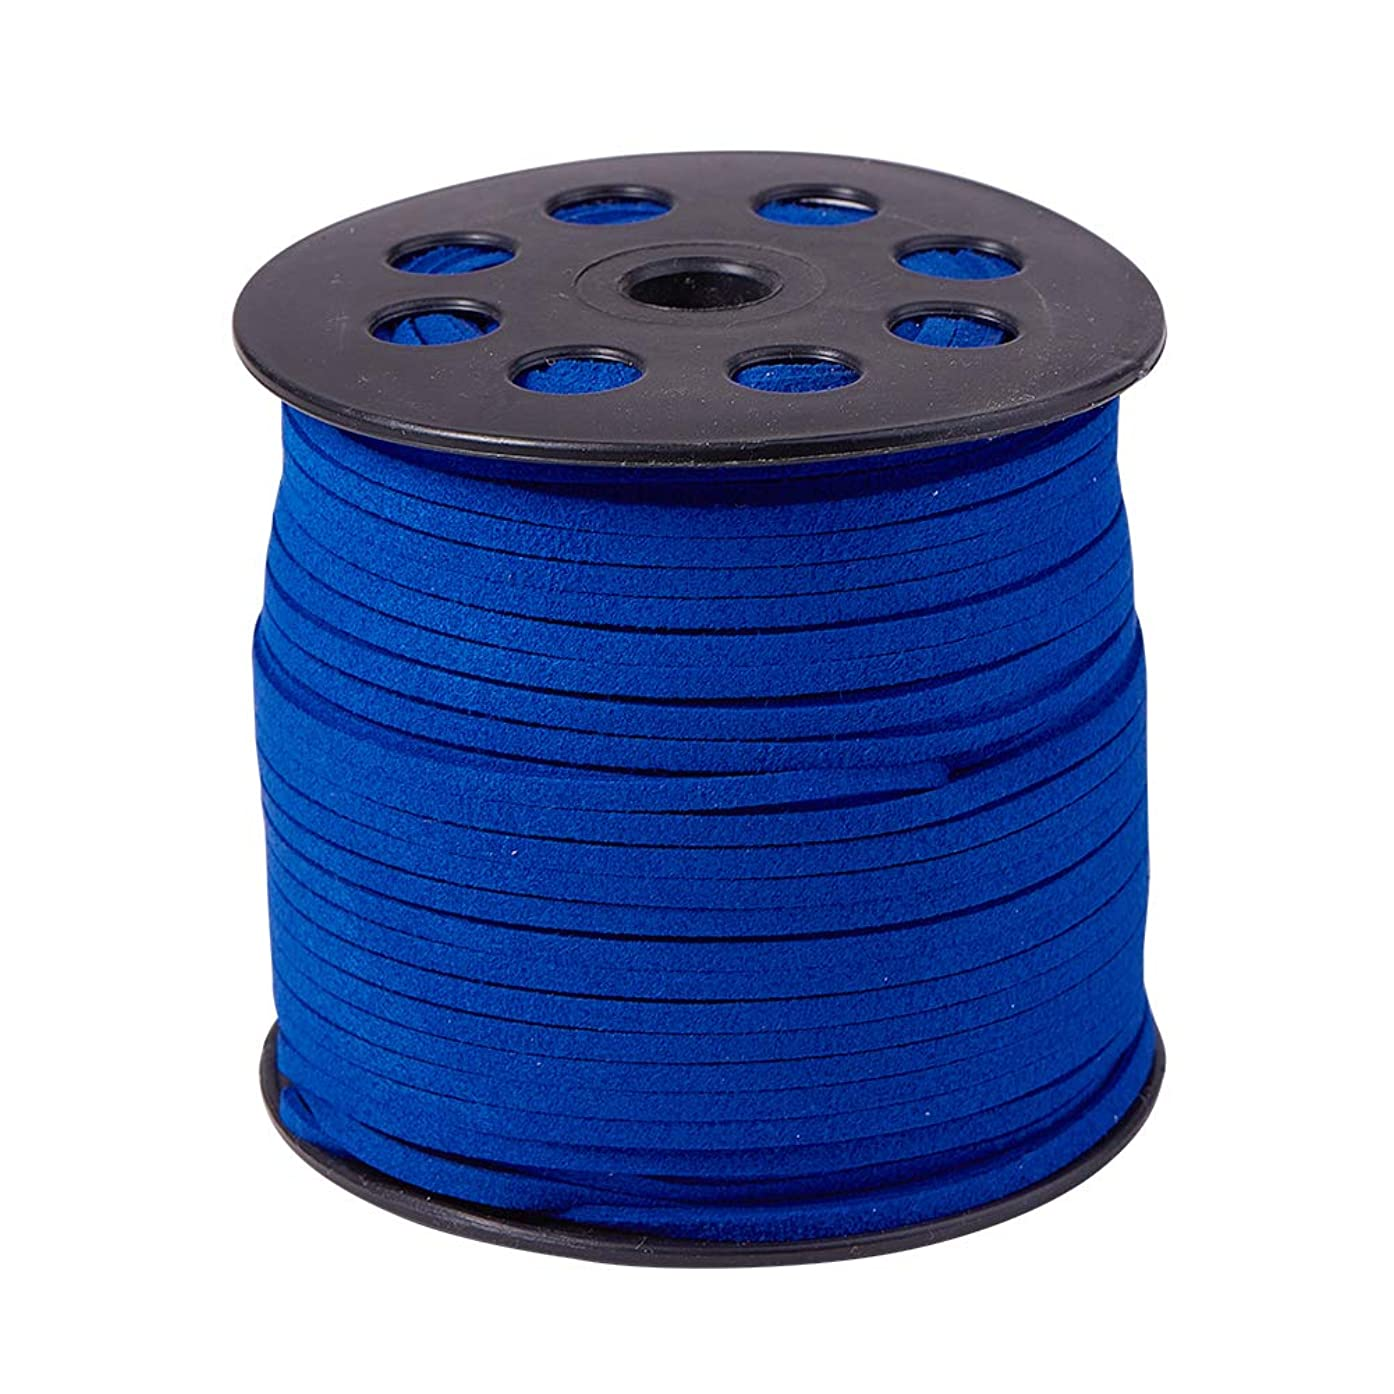 PH PandaHall 1 Roll (98 Yards, 295 Feet) 2.5mm Wide Faux Suede Cord Flat Micro Fiber Lace Leather Spool for Beading Necklace Jewelry Making (Blue)